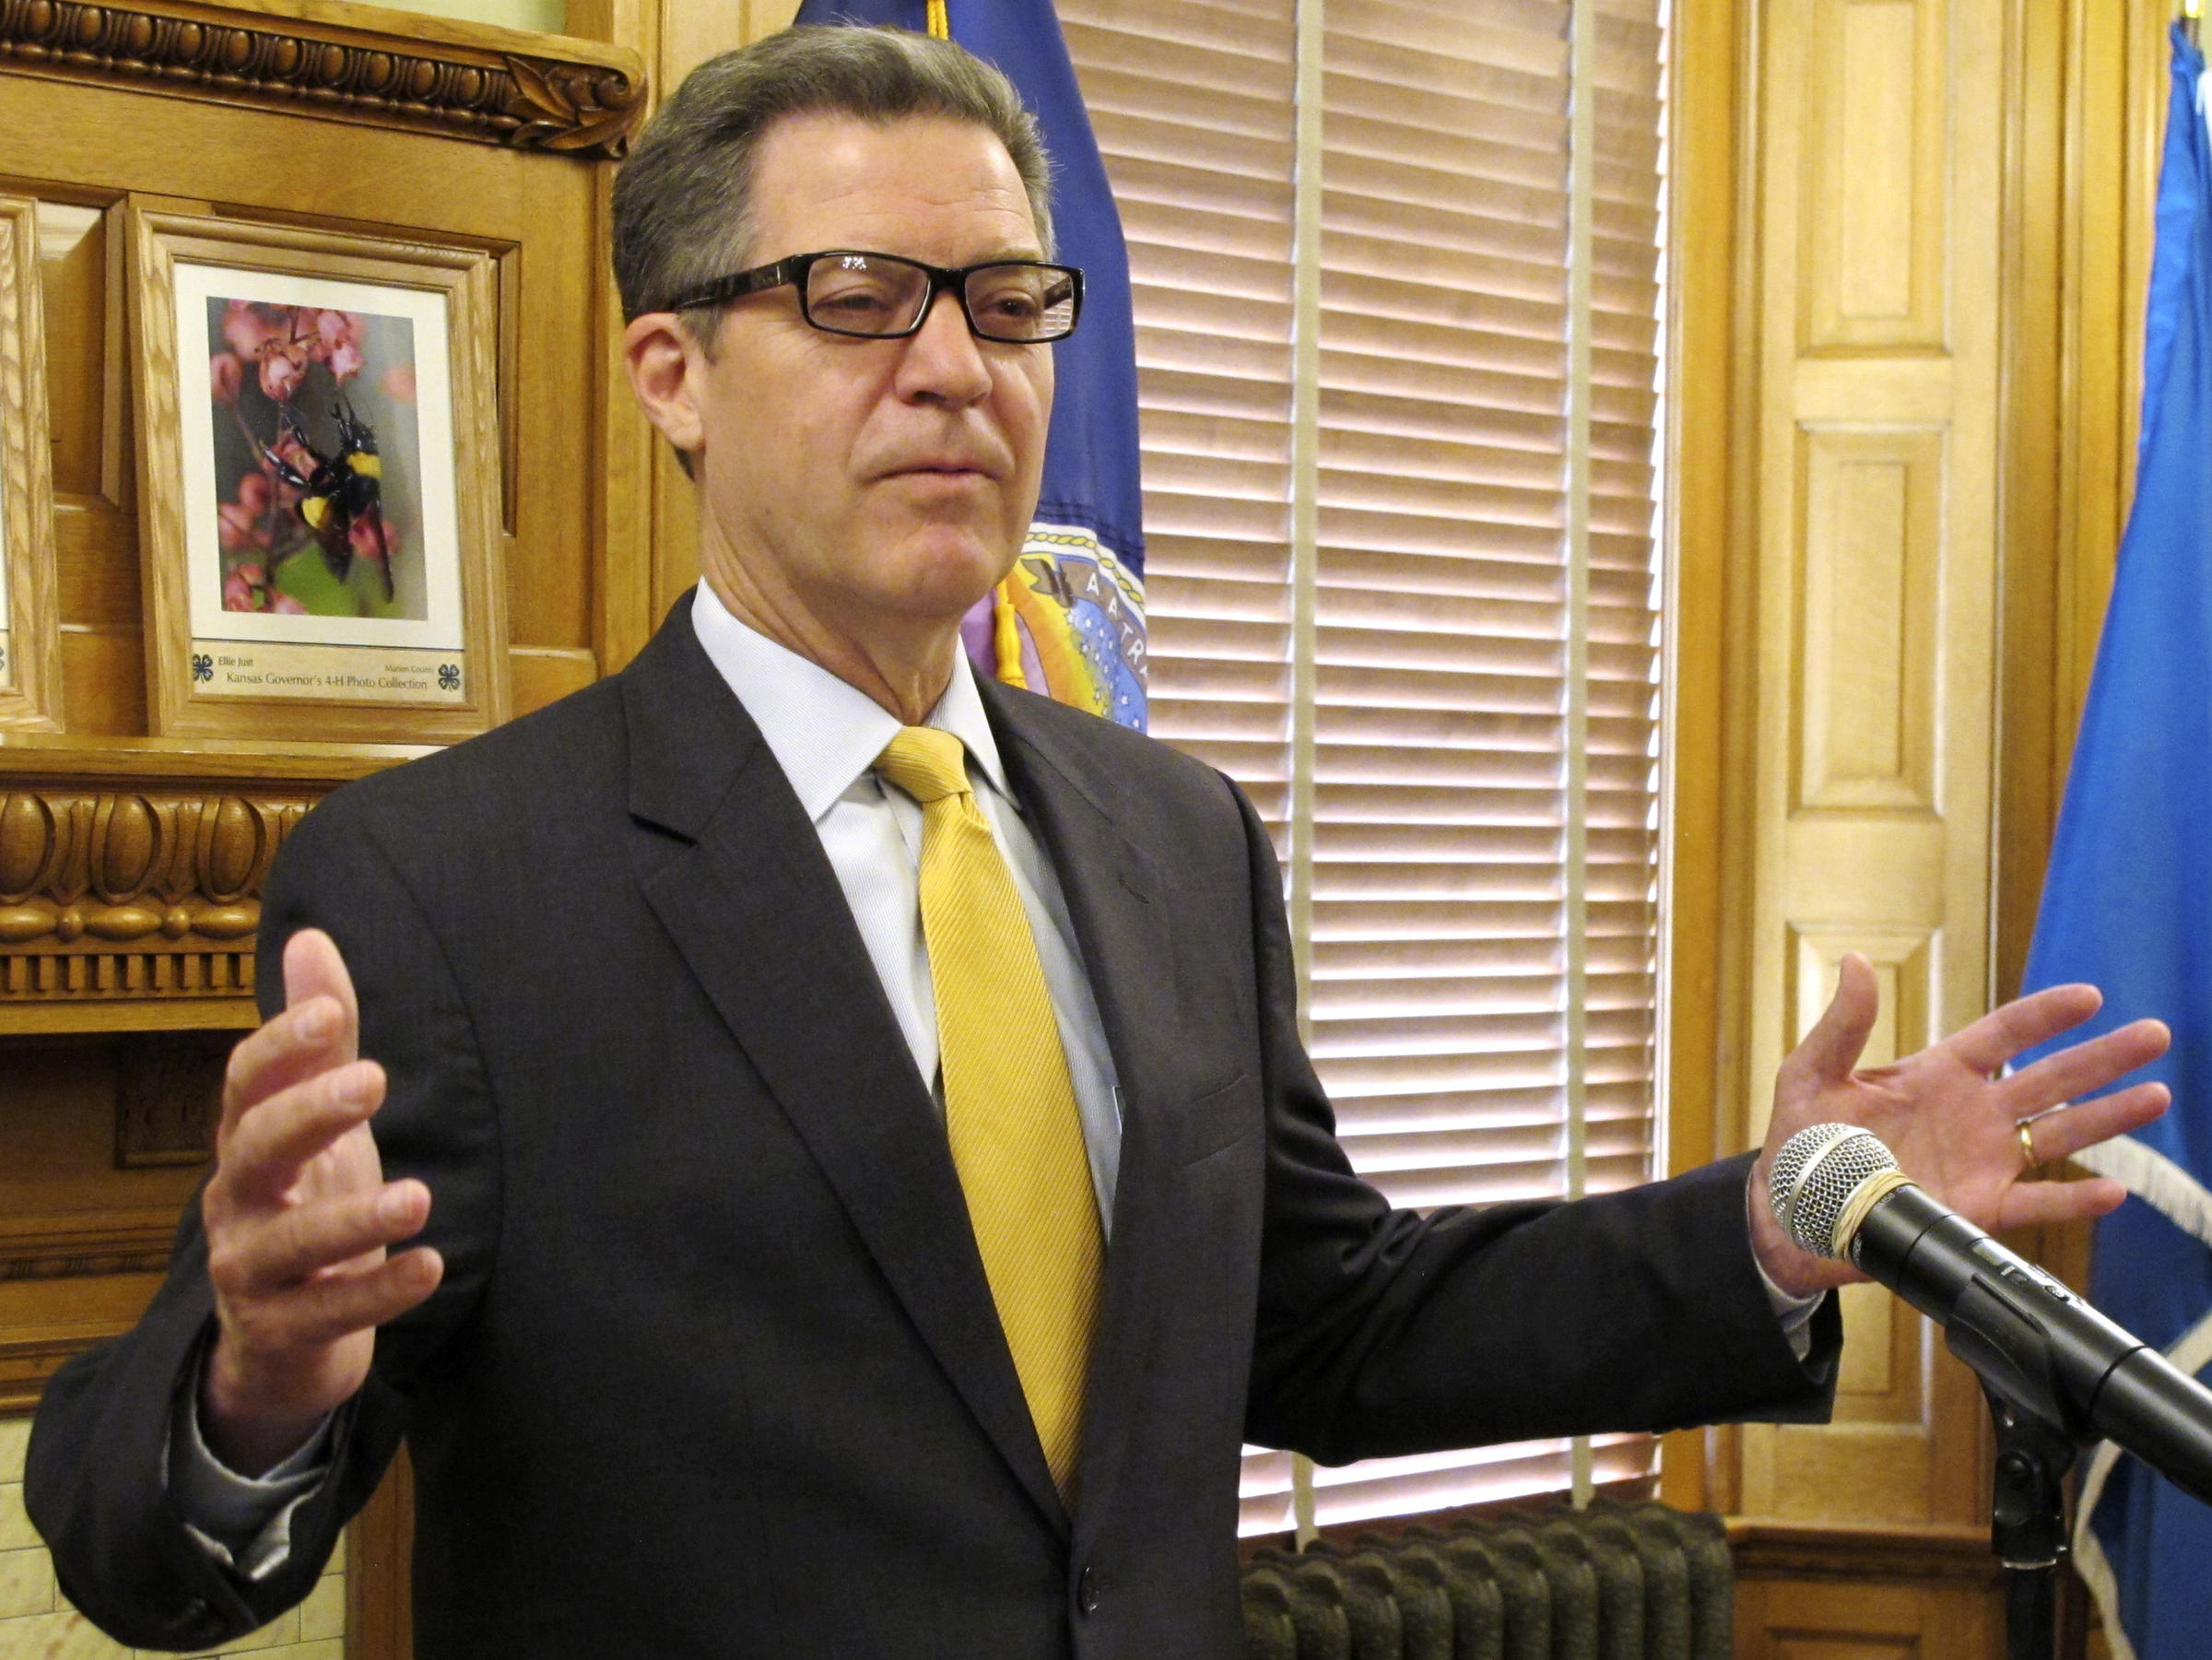 President to nominate Gov. Sam Brownback to ambassadorship